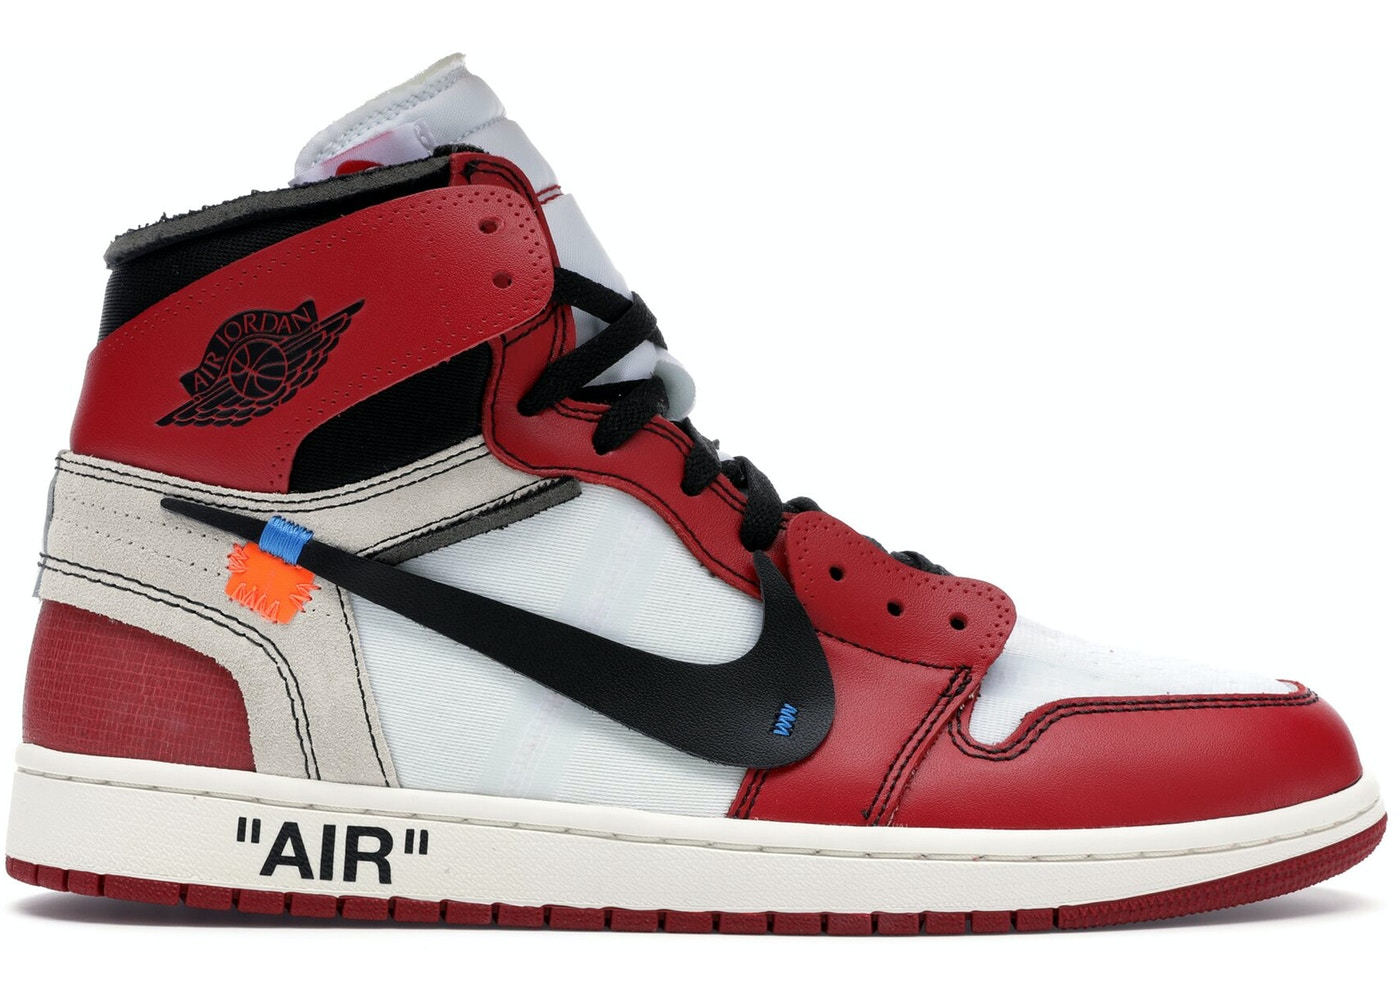 87648cd98ef775 Jordan 1 Retro High Off-White Chicago - AA3834-101